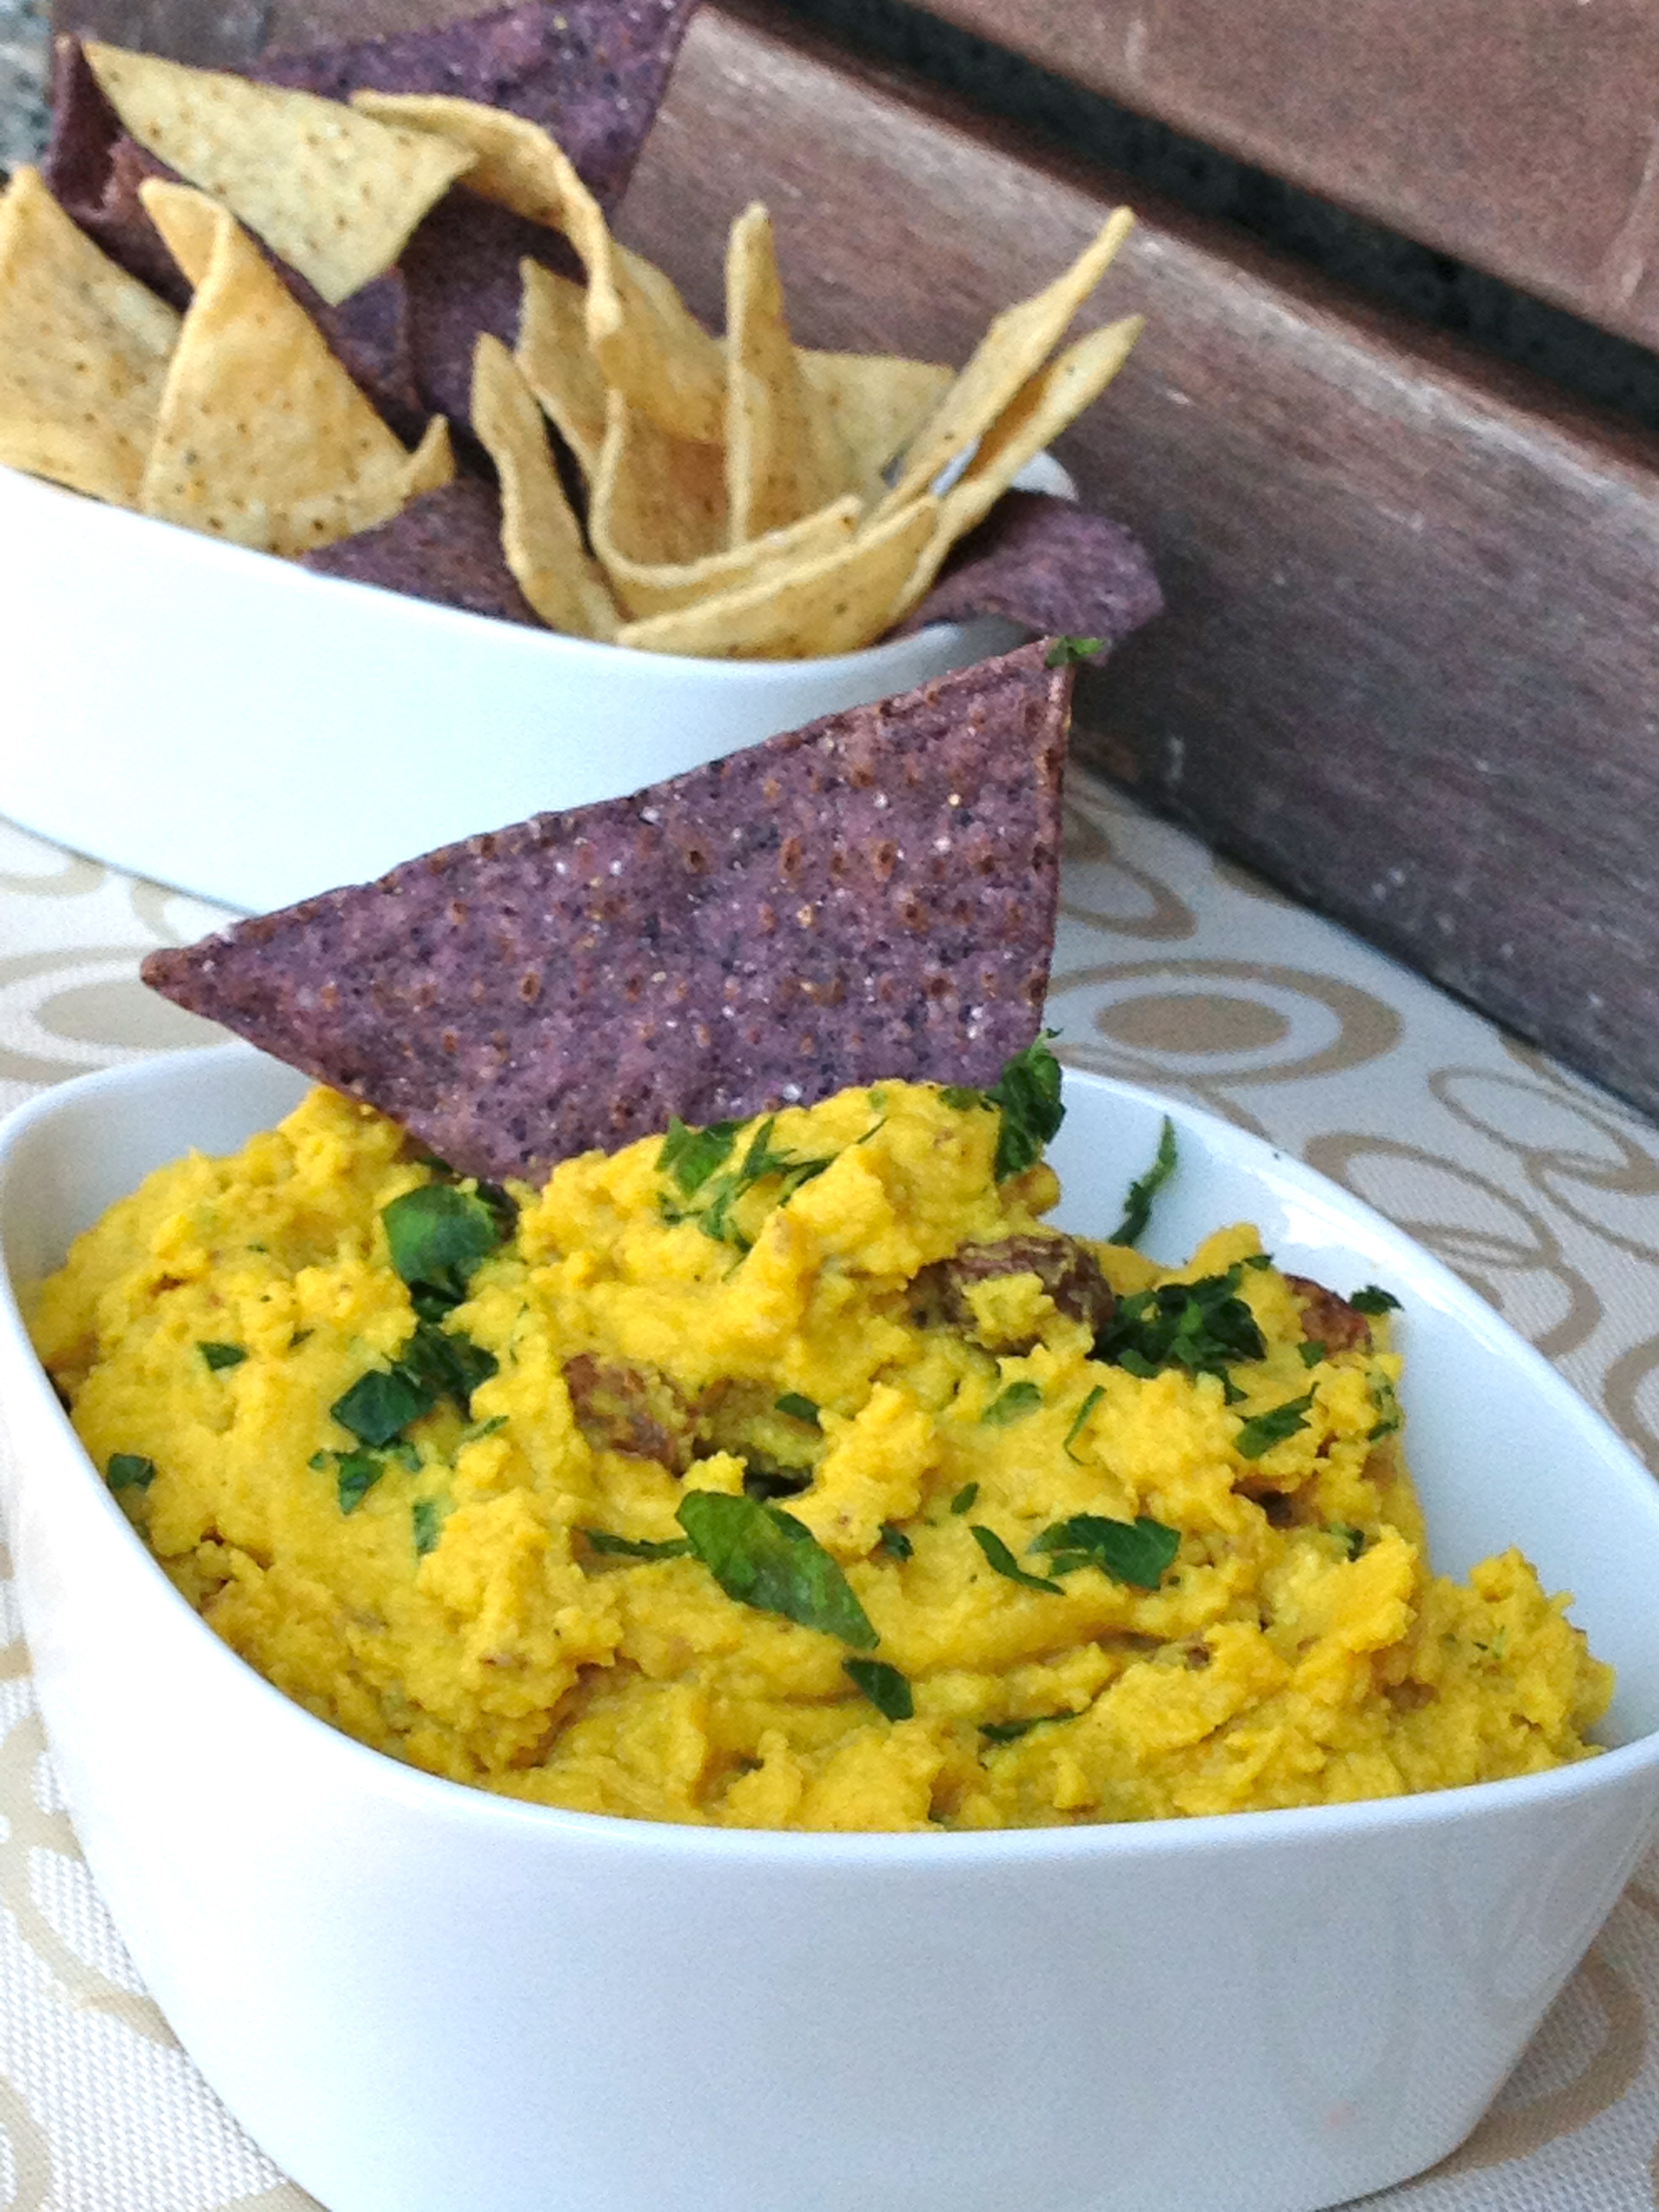 Curry Chickpea Hummus with Raisins (gluten-free, soy-free, oil-free)